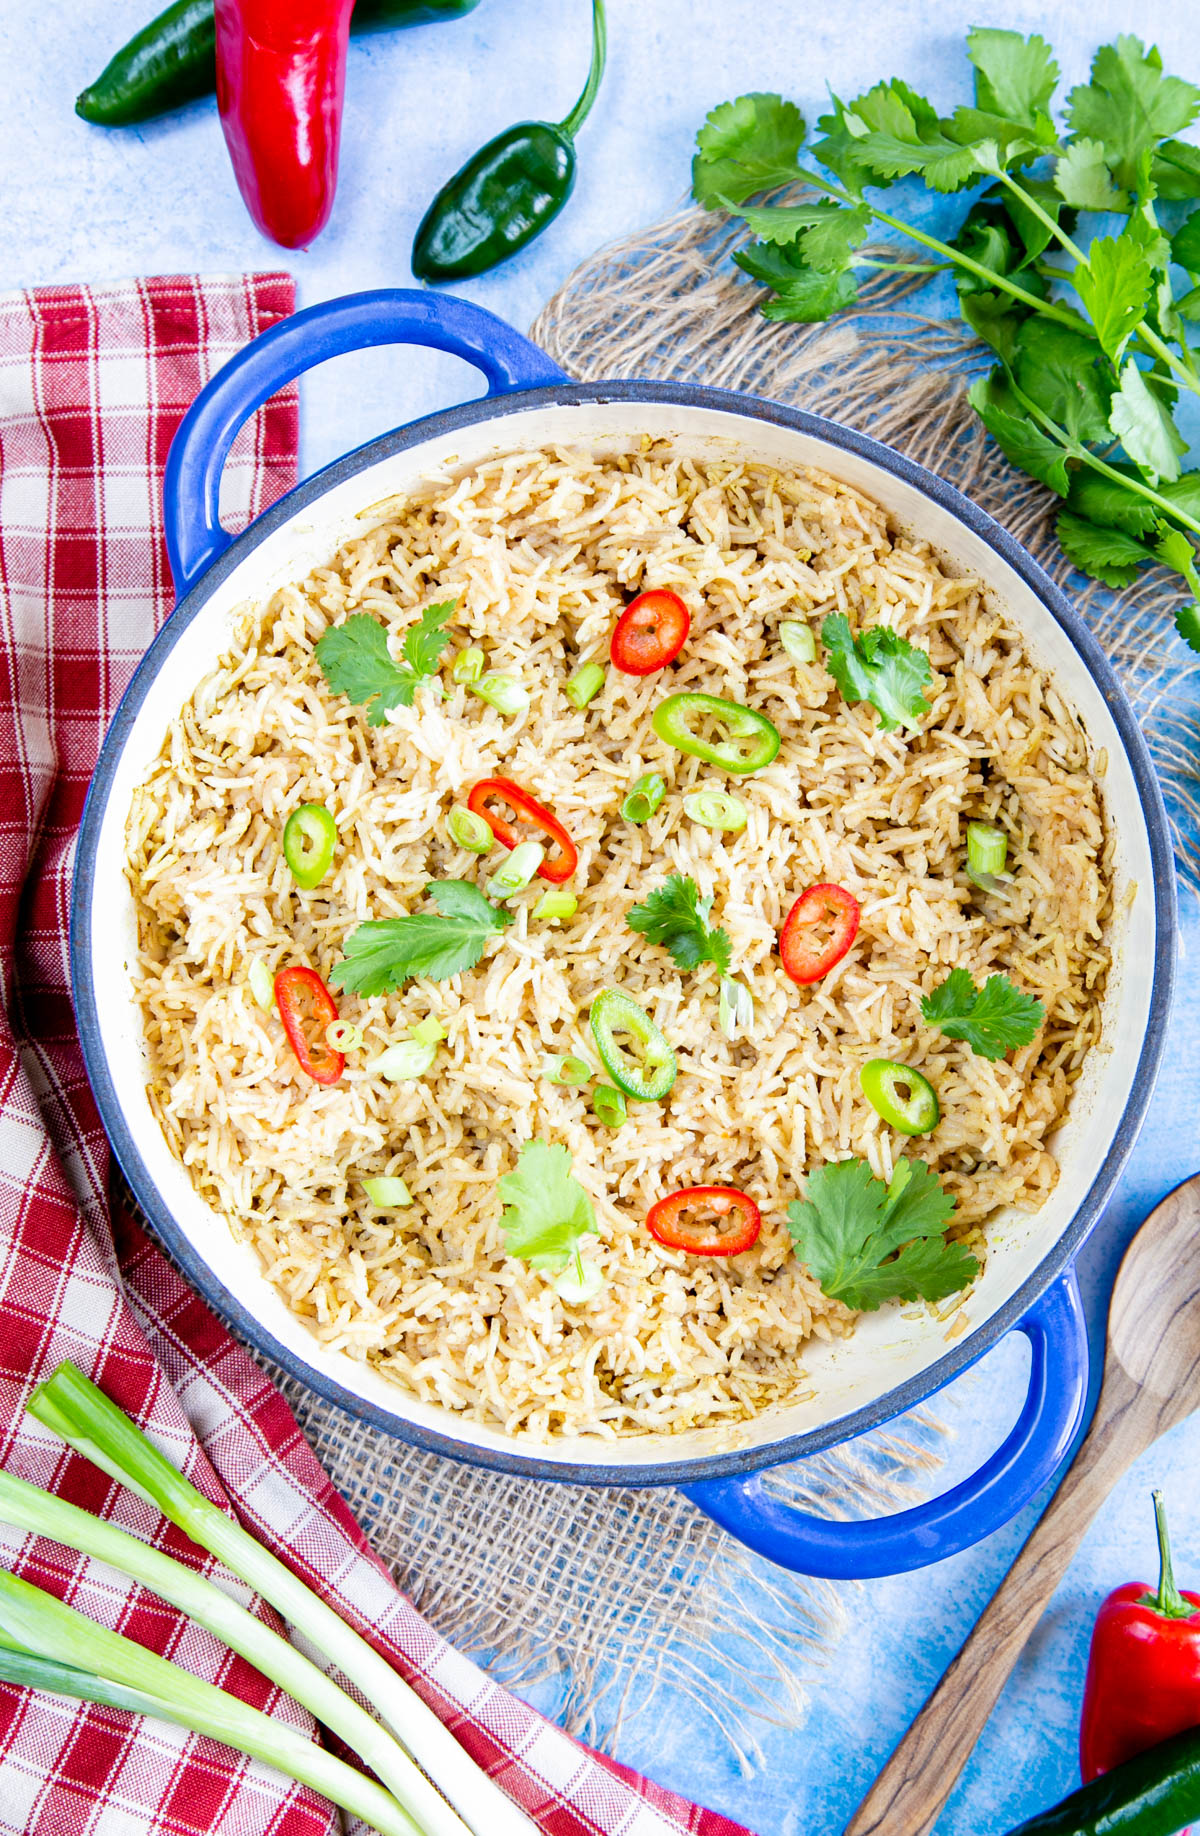 A top down picture of easy Chinese rice, garnished with coriander and slice of red and green chillies, in a shallow casserole dish. Surrounding the dish are more chillies and fresh coriander, Spring onions, a small wooden spoon and a checked cloth.